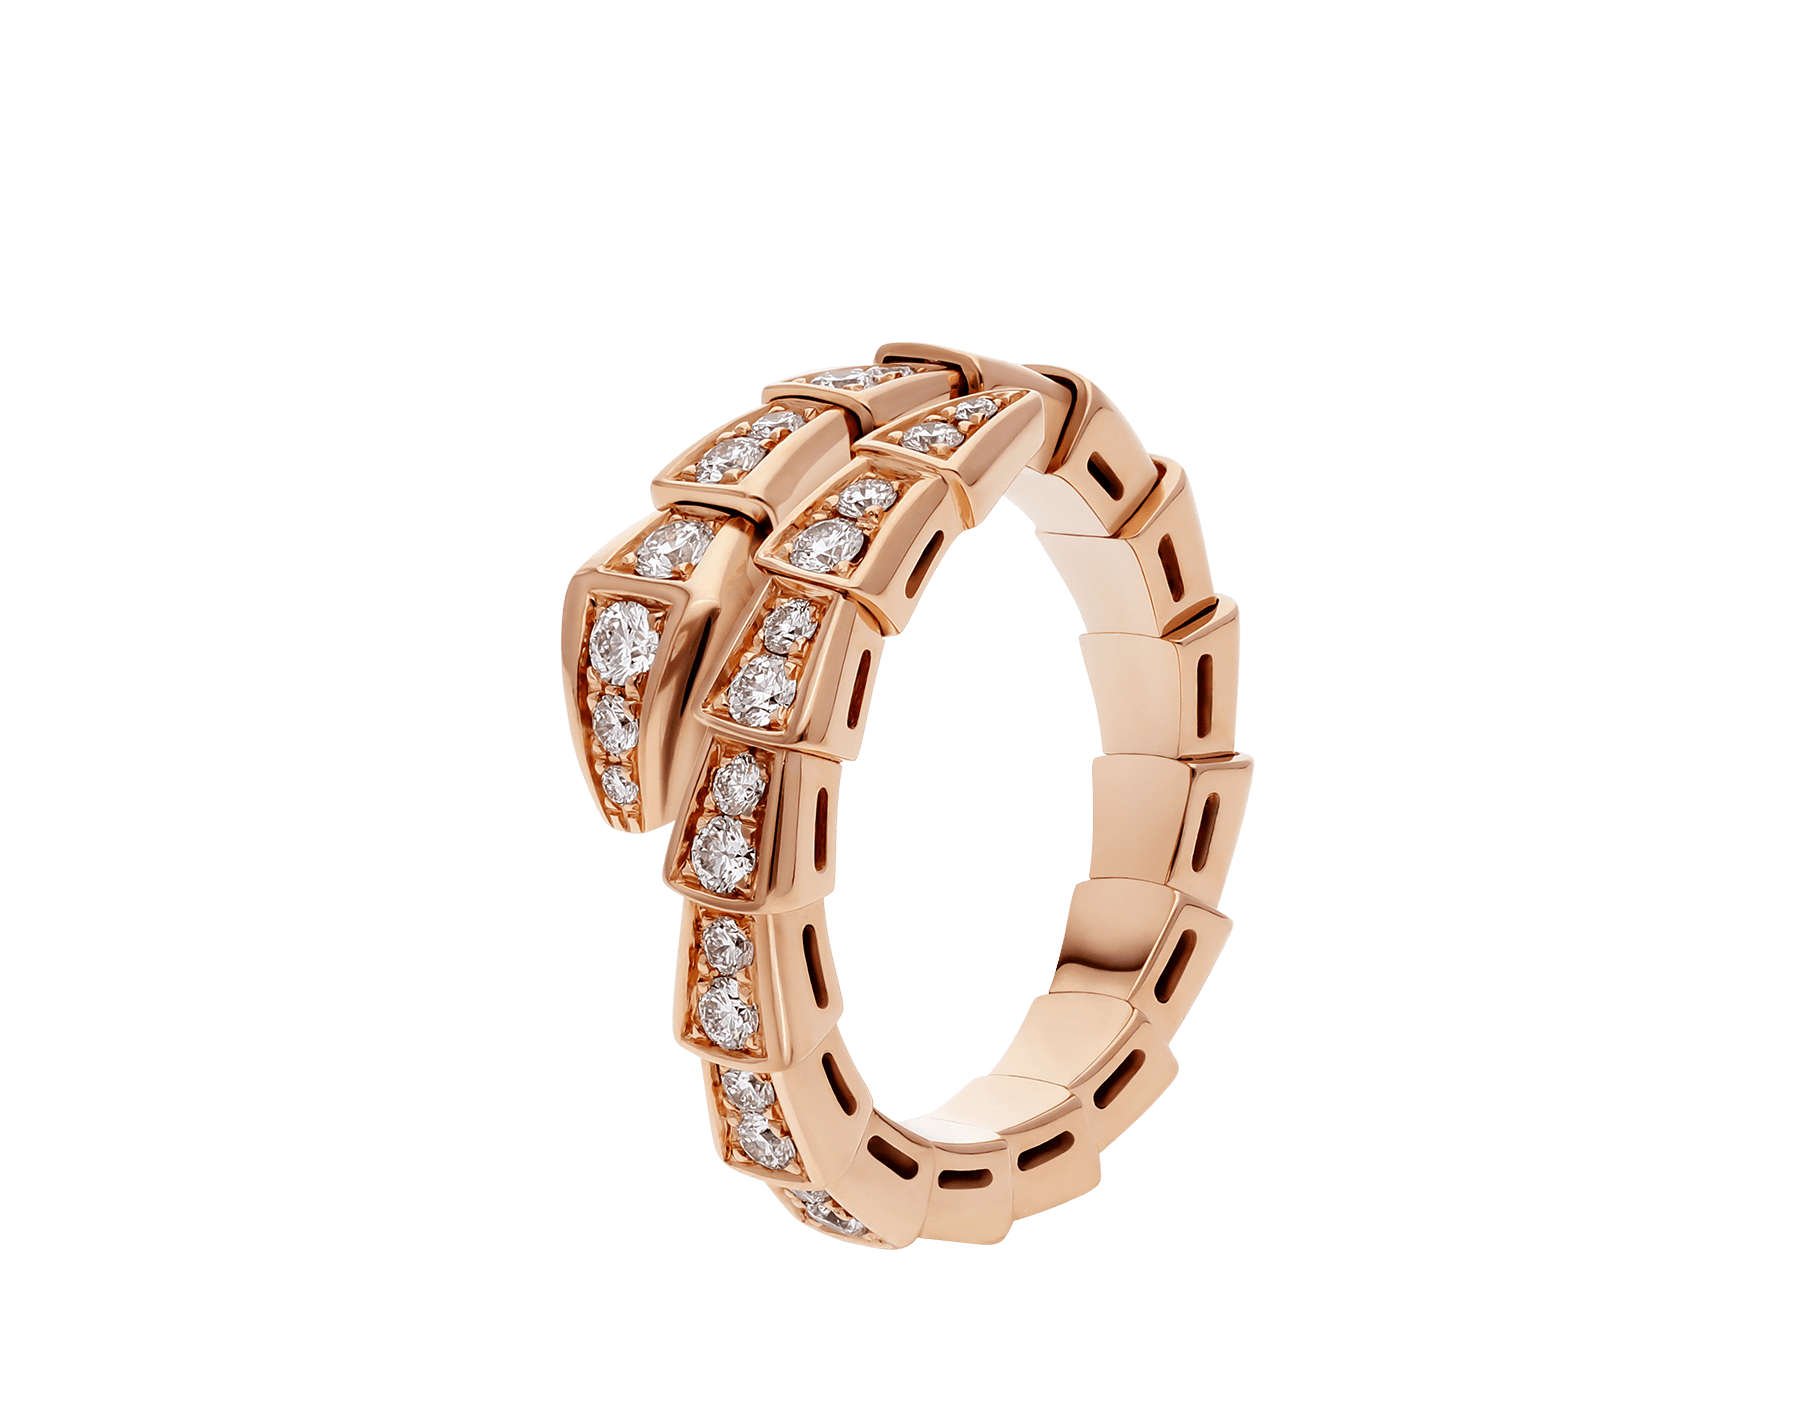 Serpenti 18 kt rose gold ring set with pavé diamonds AN858522 image 1